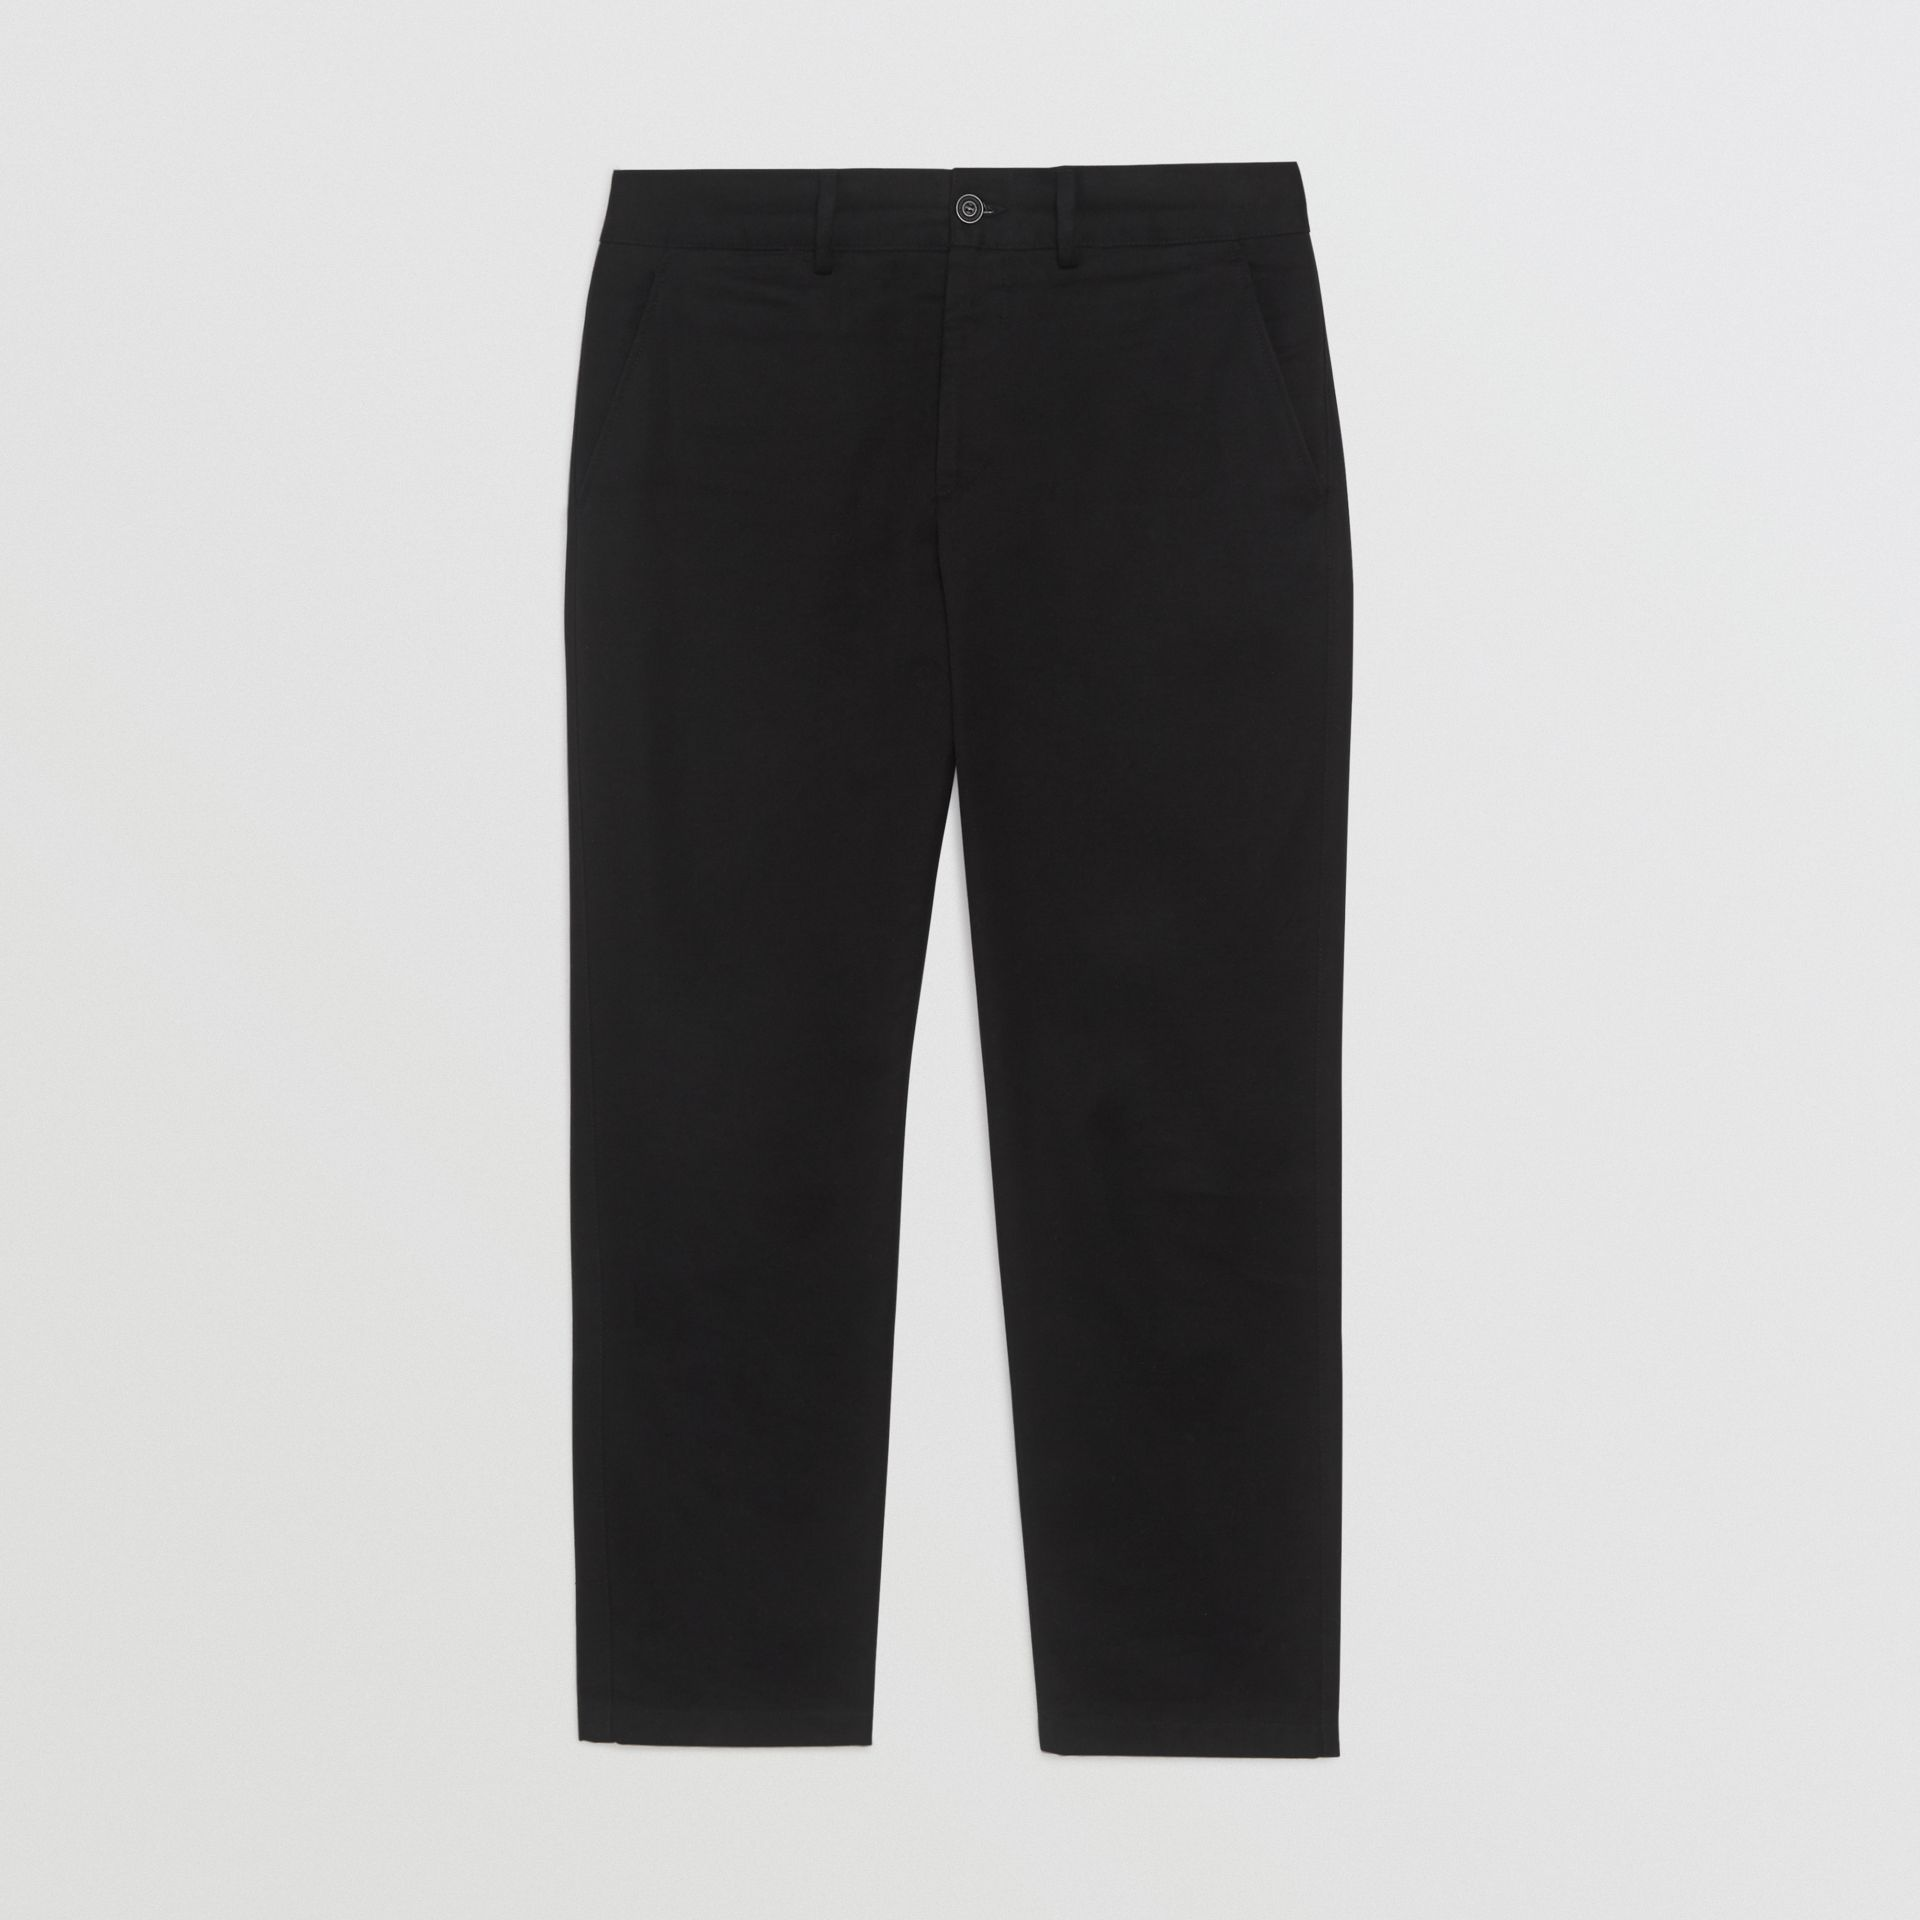 Slim Fit Cotton Blend Chinos in Black - Men | Burberry - gallery image 3